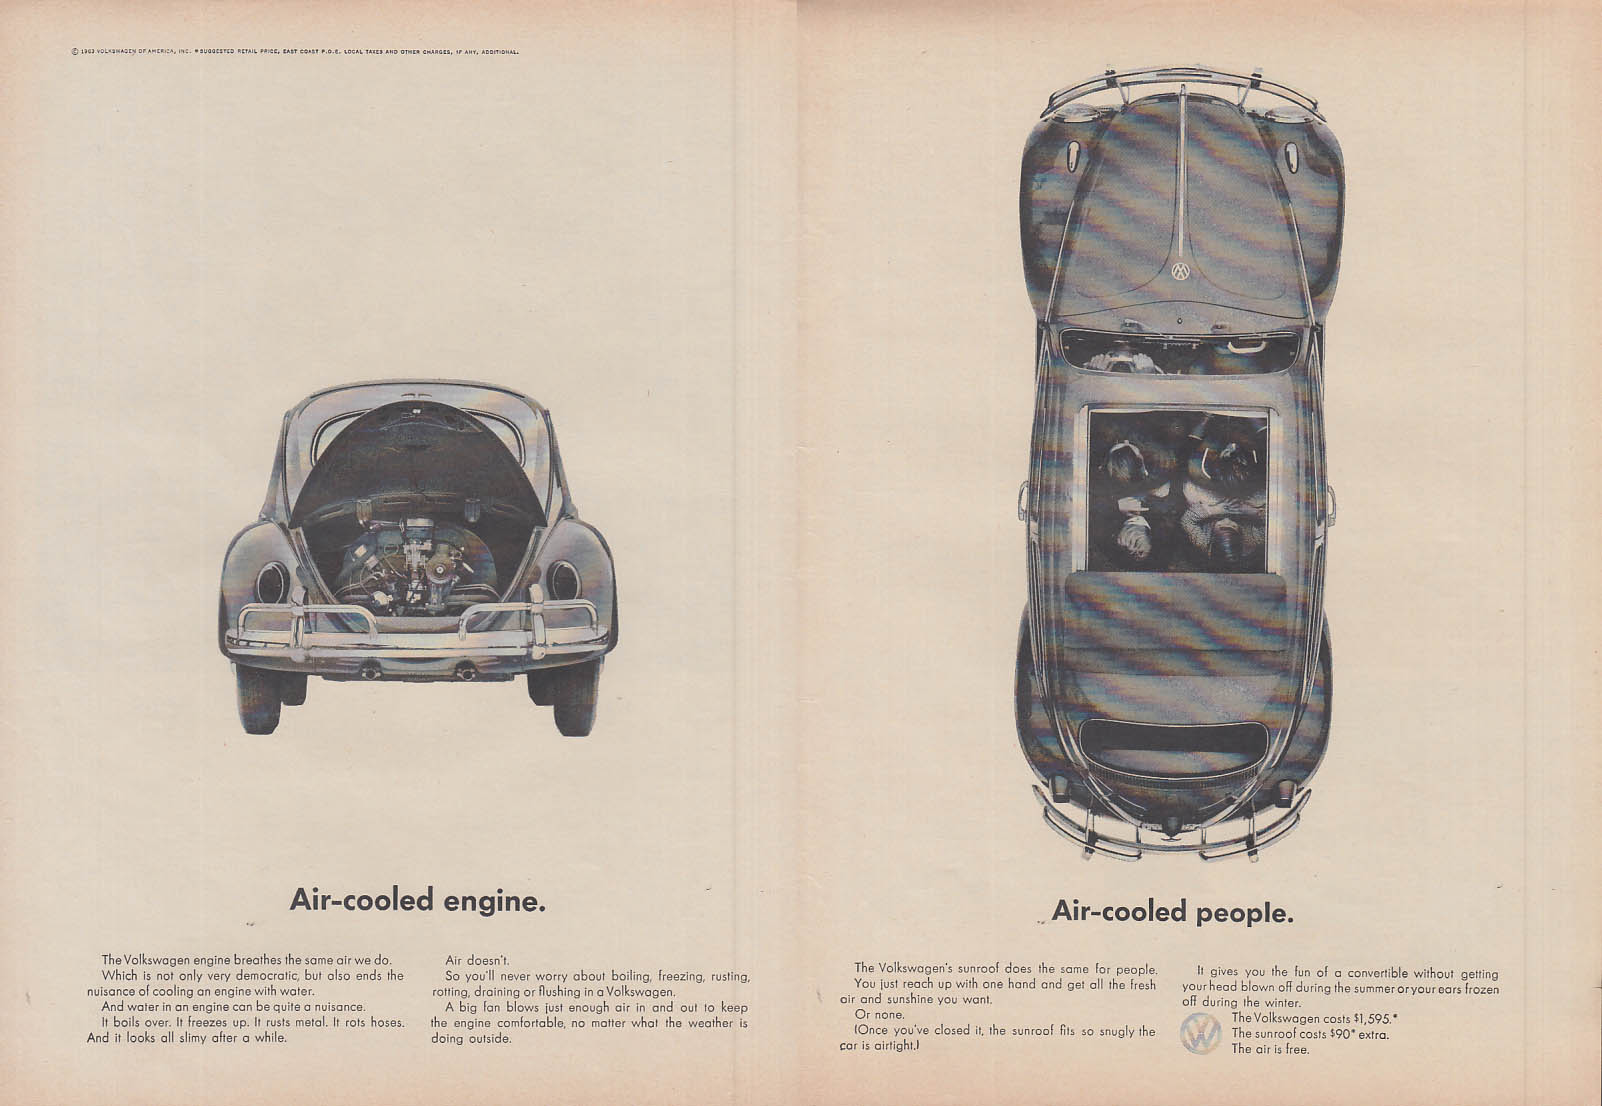 Air-cooled engine - Air-cooled people - Volkswagen ad 1963 T